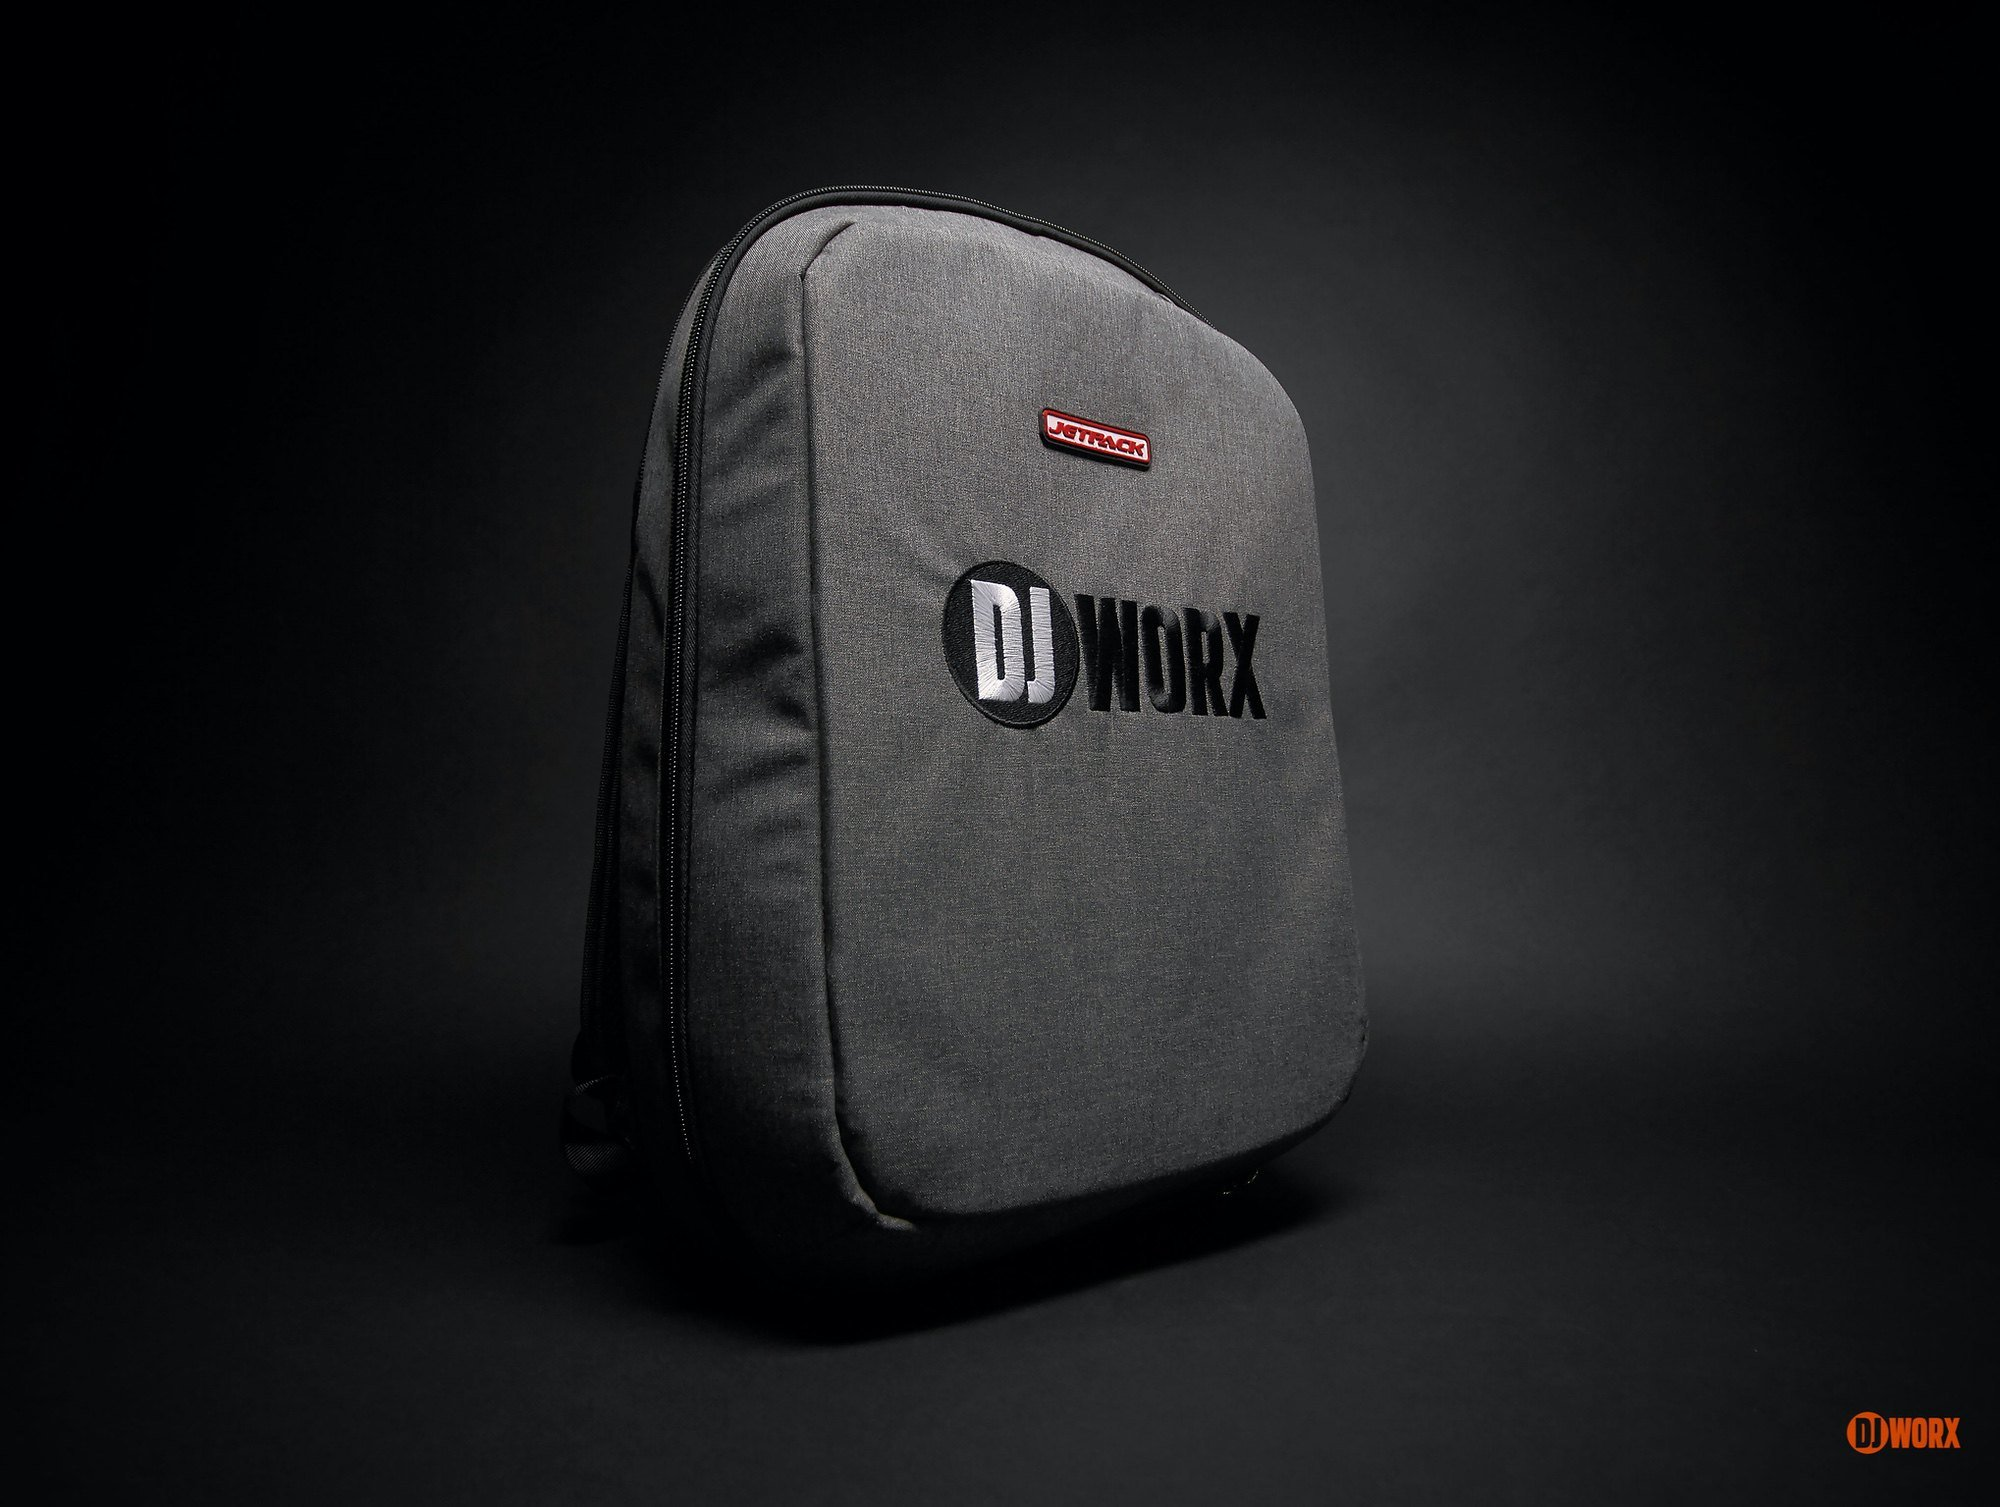 Review Jetpack Slim Dj Bag Again Djworx